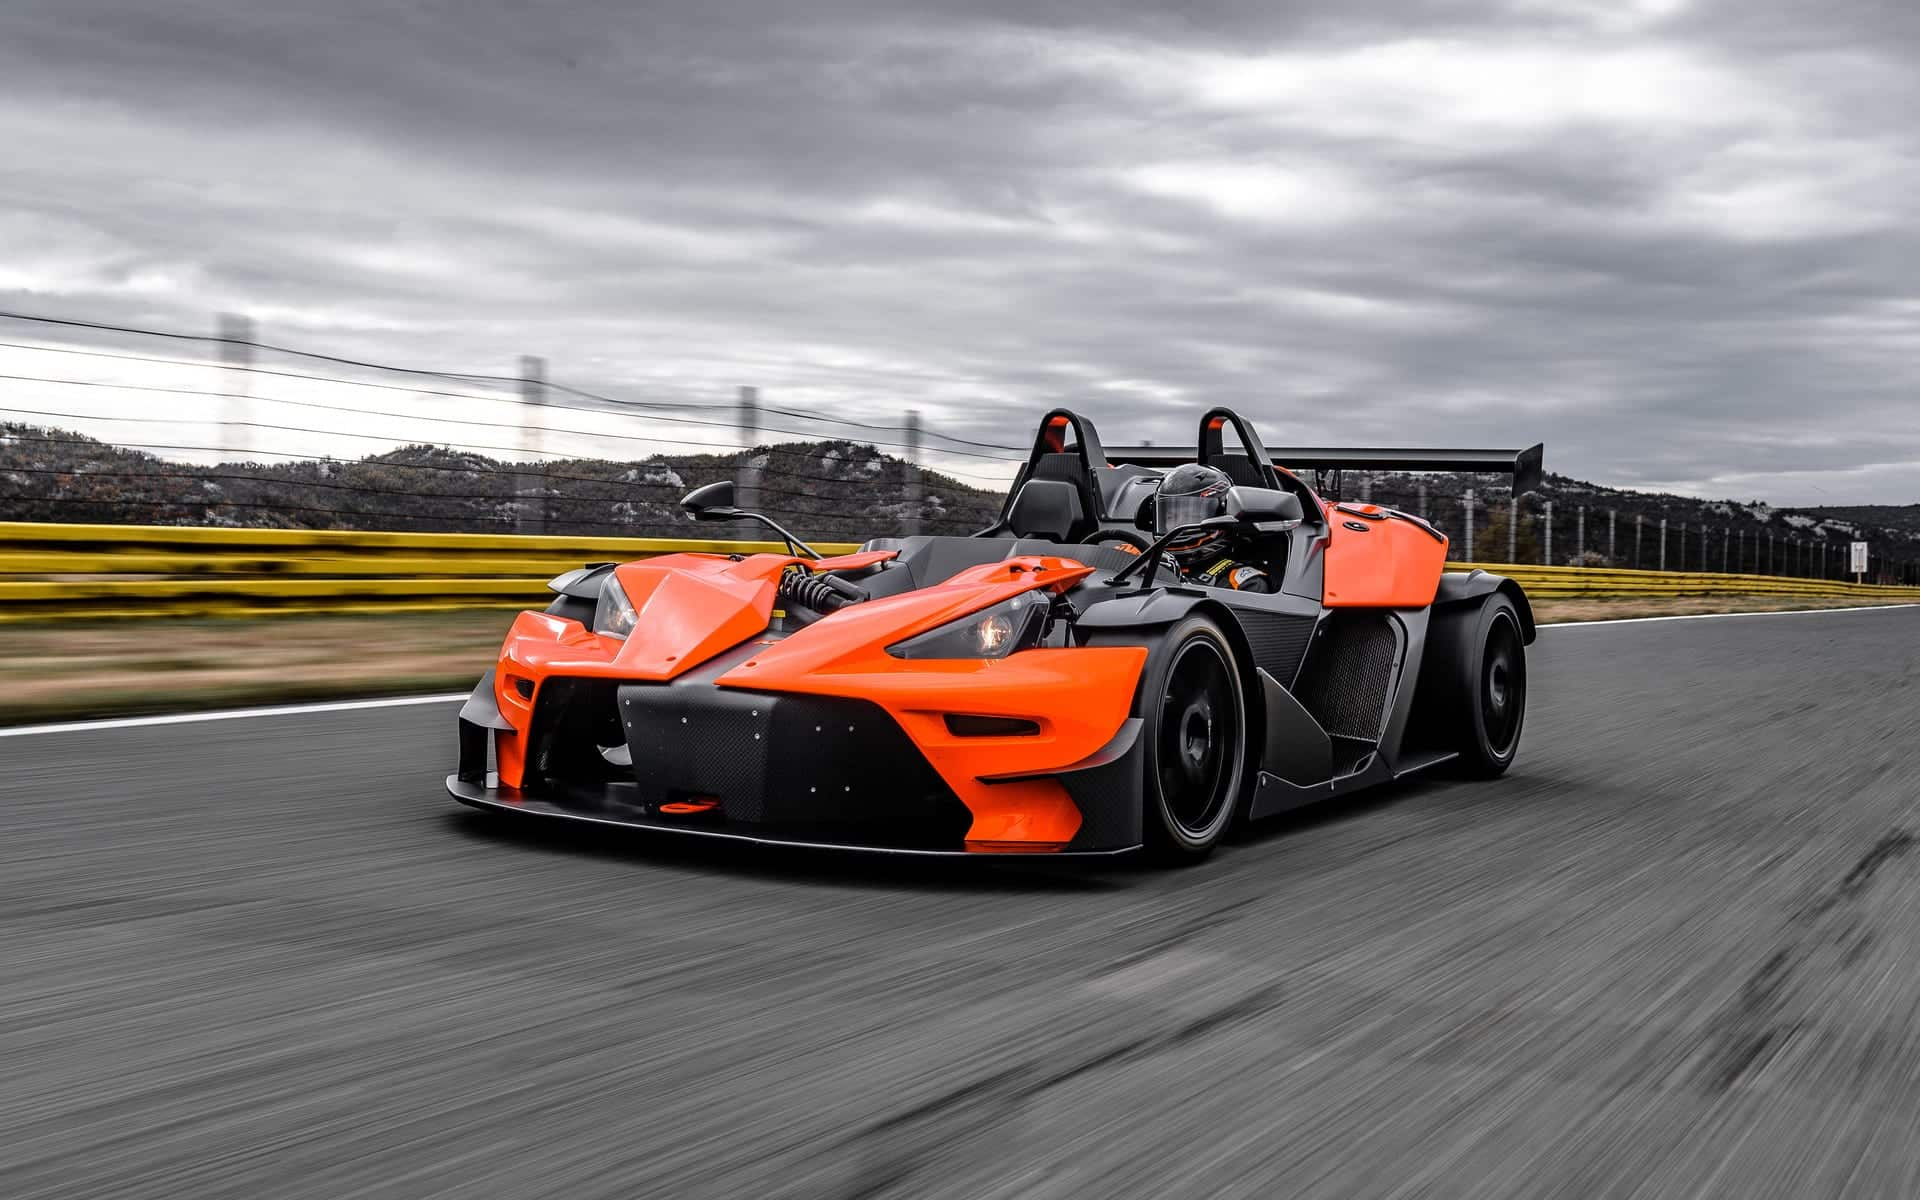 Meet Project Wondercar The Ktm X Bow Comp R Sears Point Racing Experience